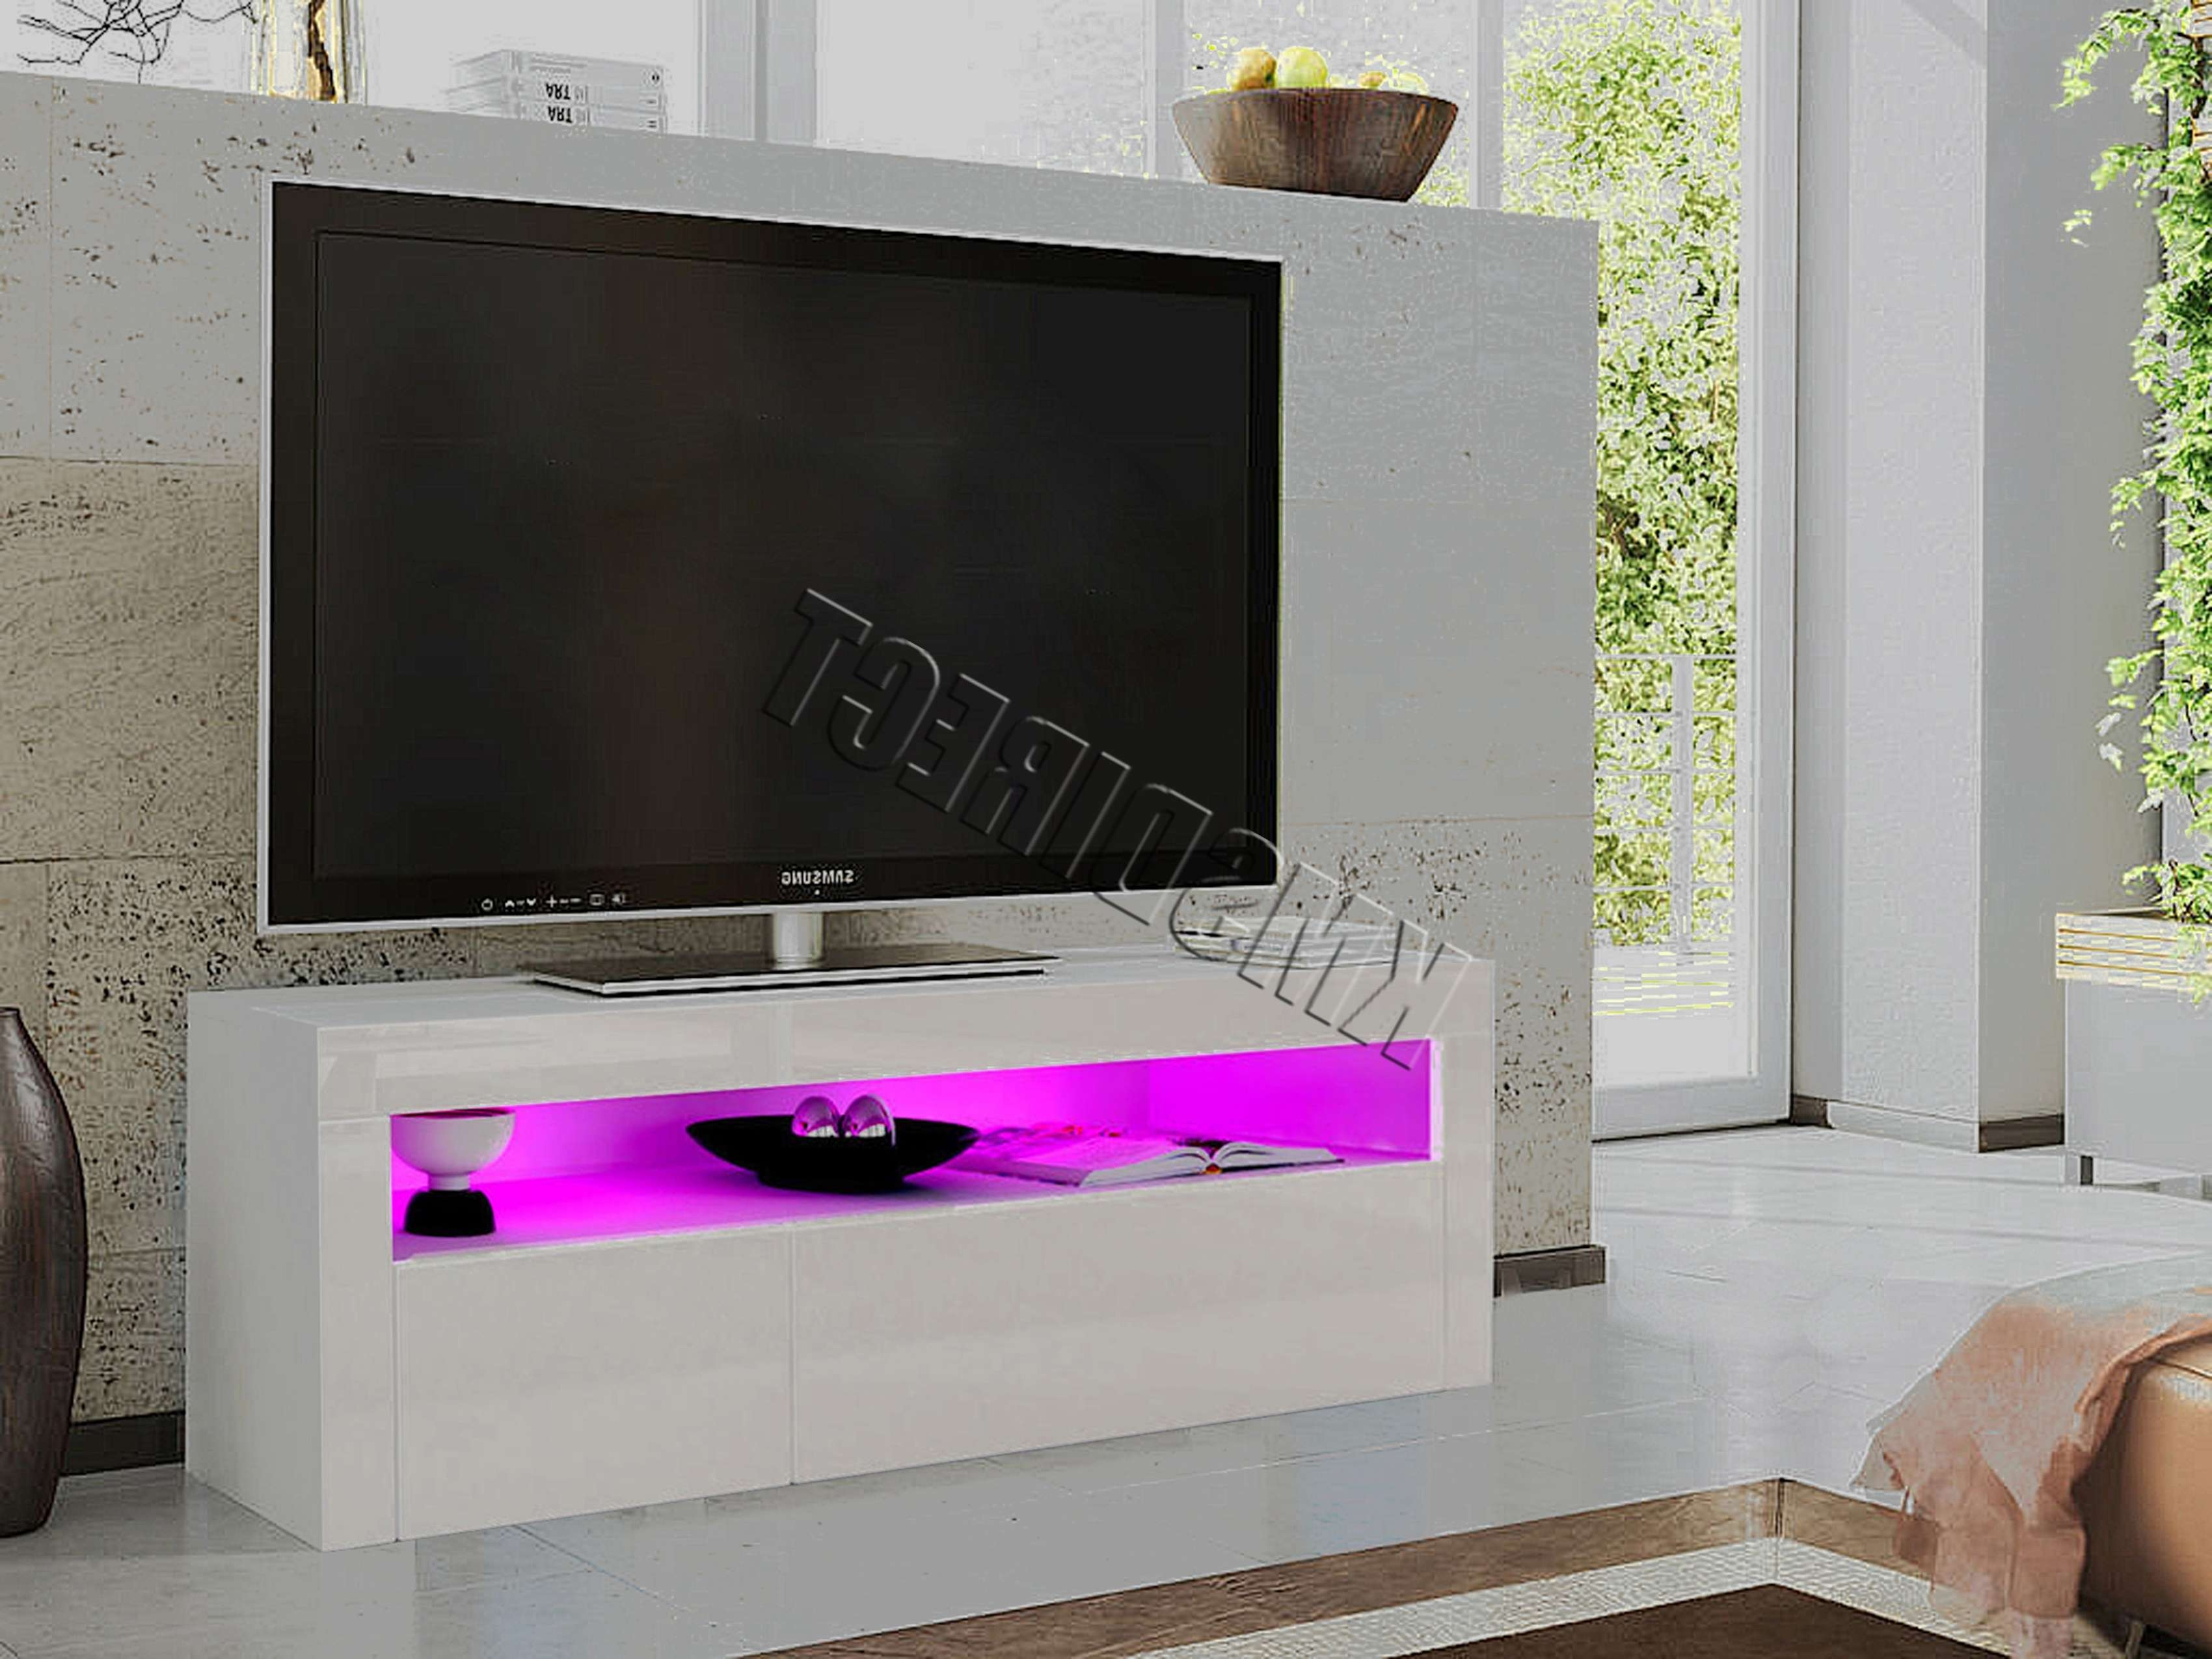 Foxhunter Modern High Gloss Matt Tv Cabinet Unit Stand White Rgb Inside Gloss Tv Stands (View 6 of 15)